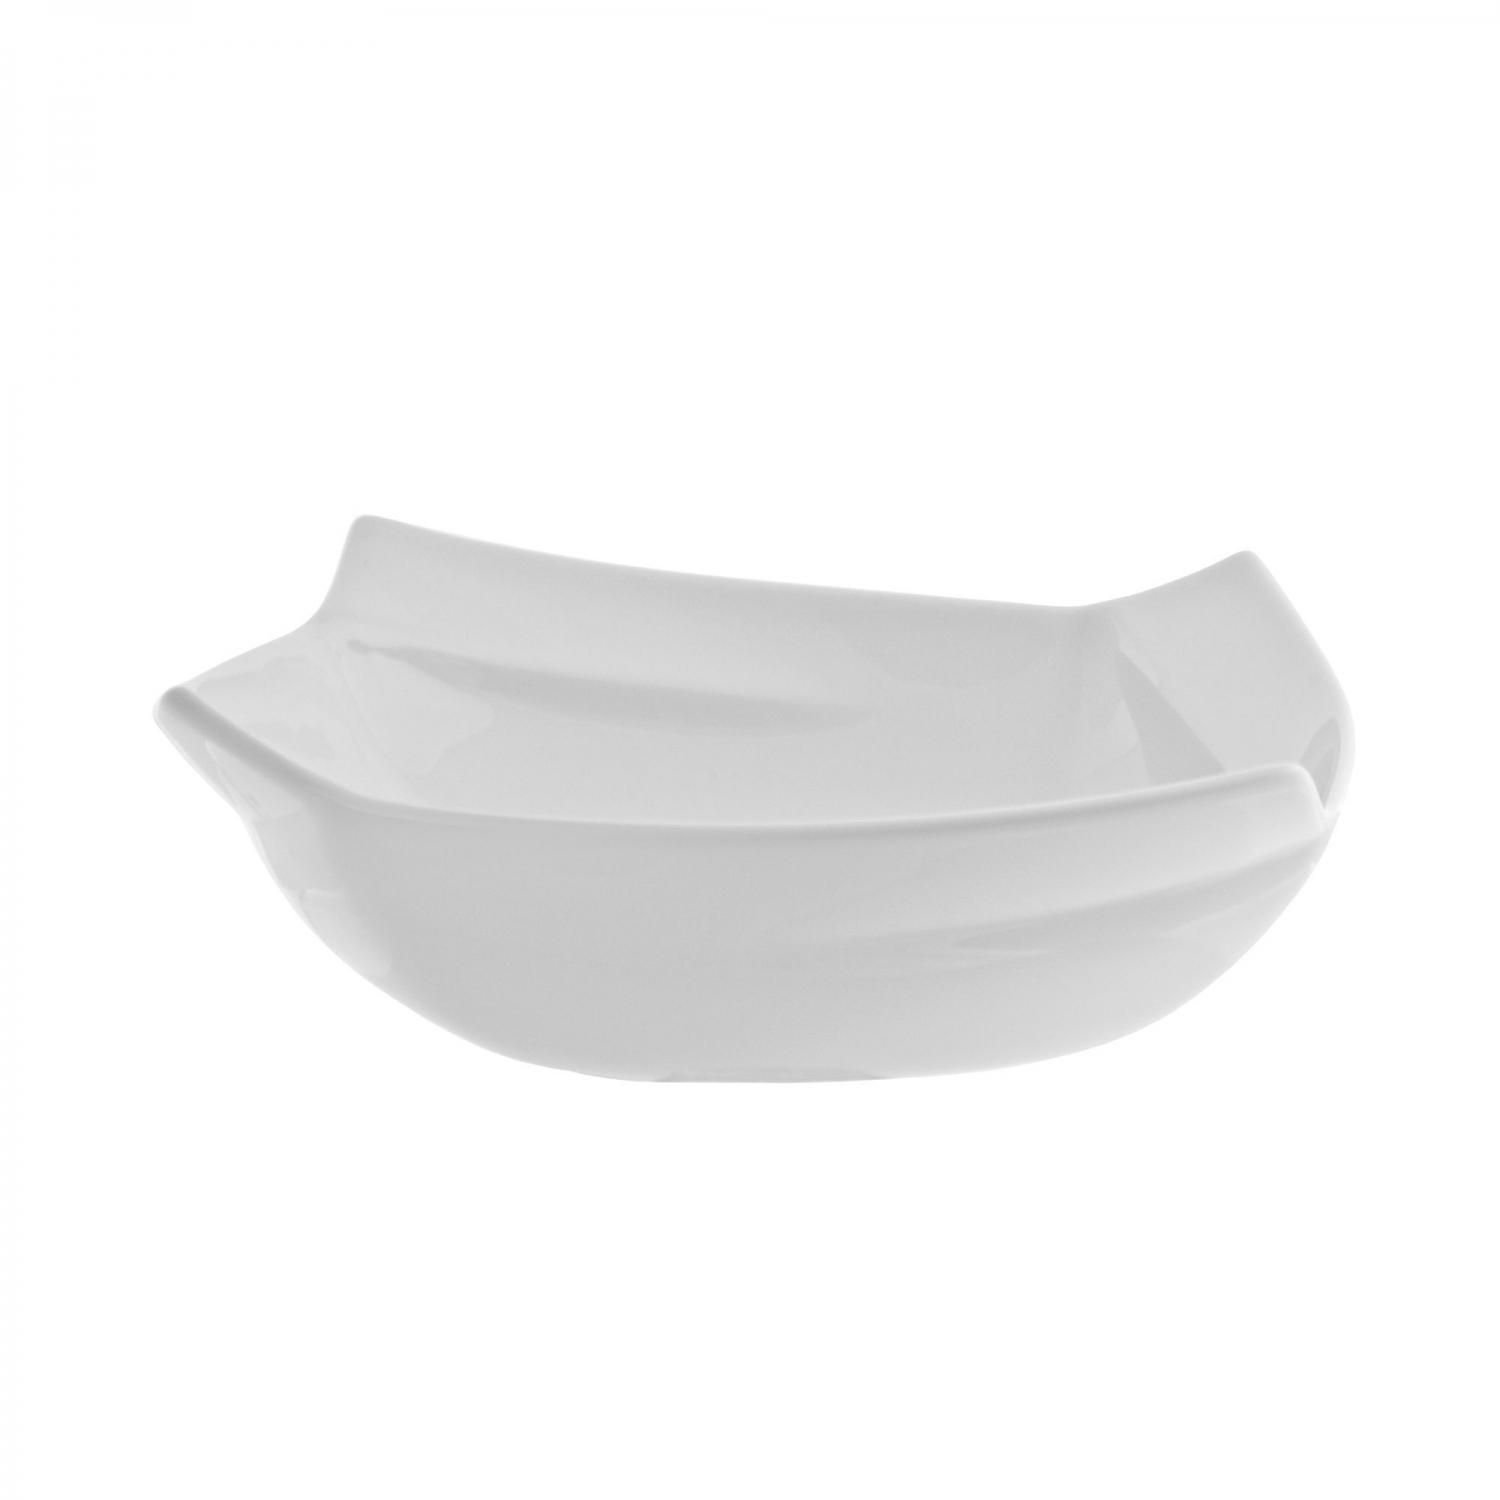 10 Strawberry Street NOU-7SQ 8 oz. Nouve Square White Cereal Bowl